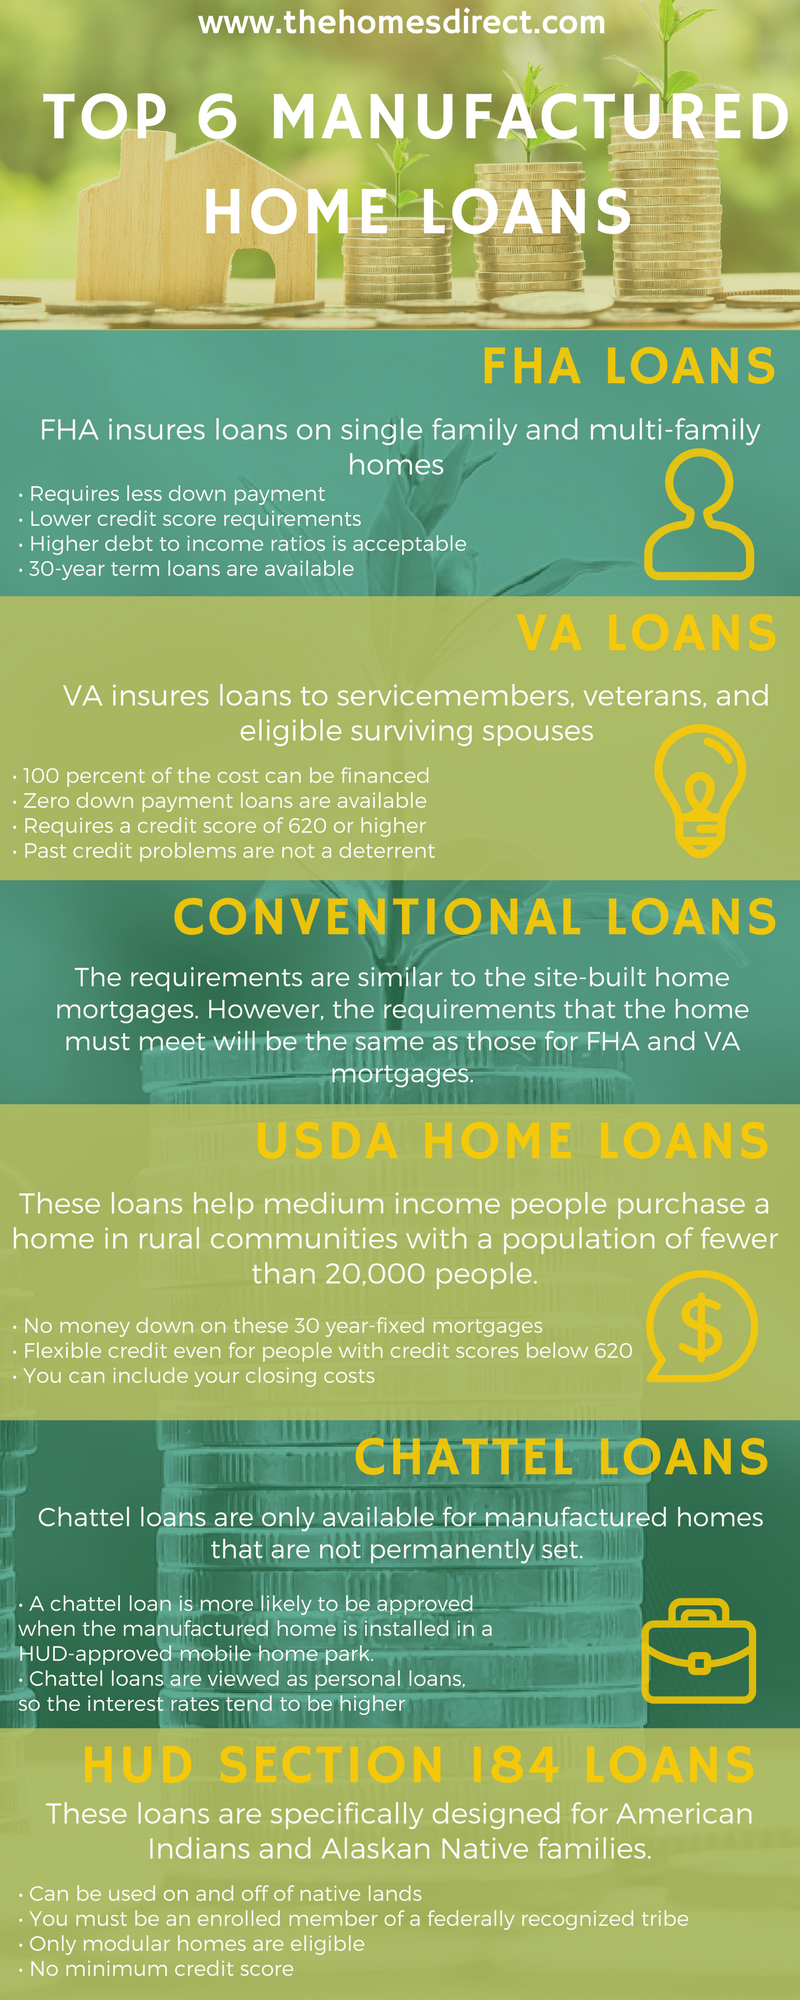 A Simple Guide To The Top 6 Best Manufactured Home Loans Homes Direct Home Loans Manufactured Home Best Home Loans